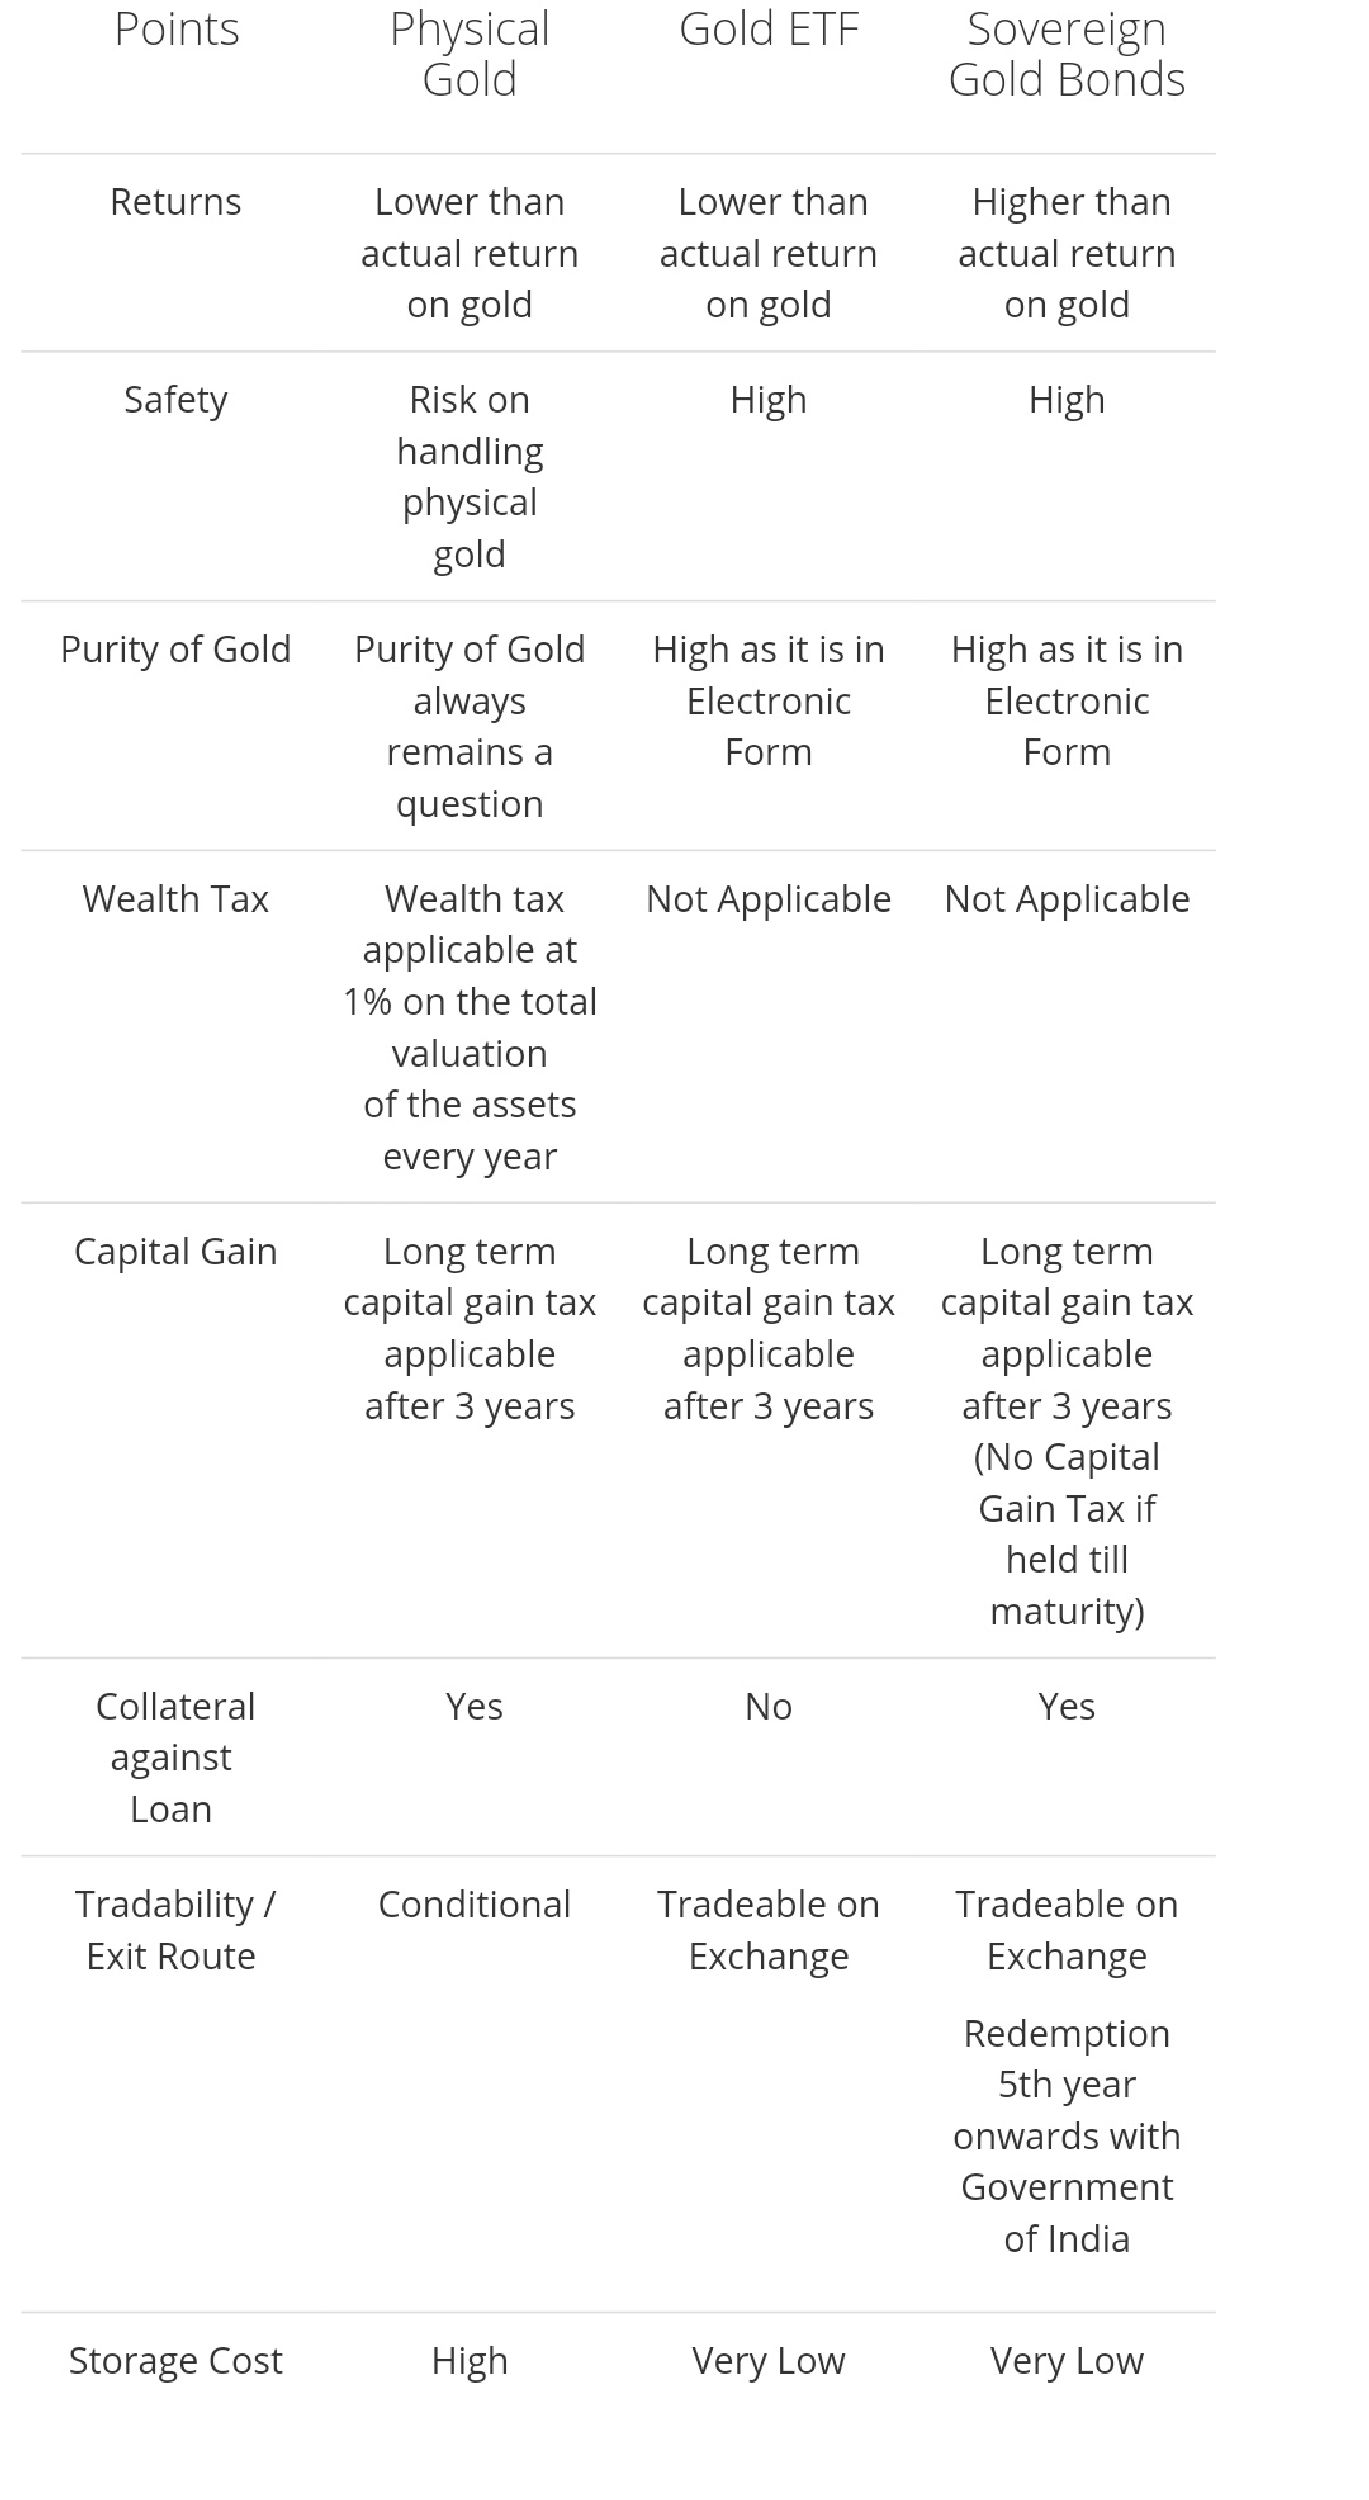 Comparision between physica gold & etf & sgb